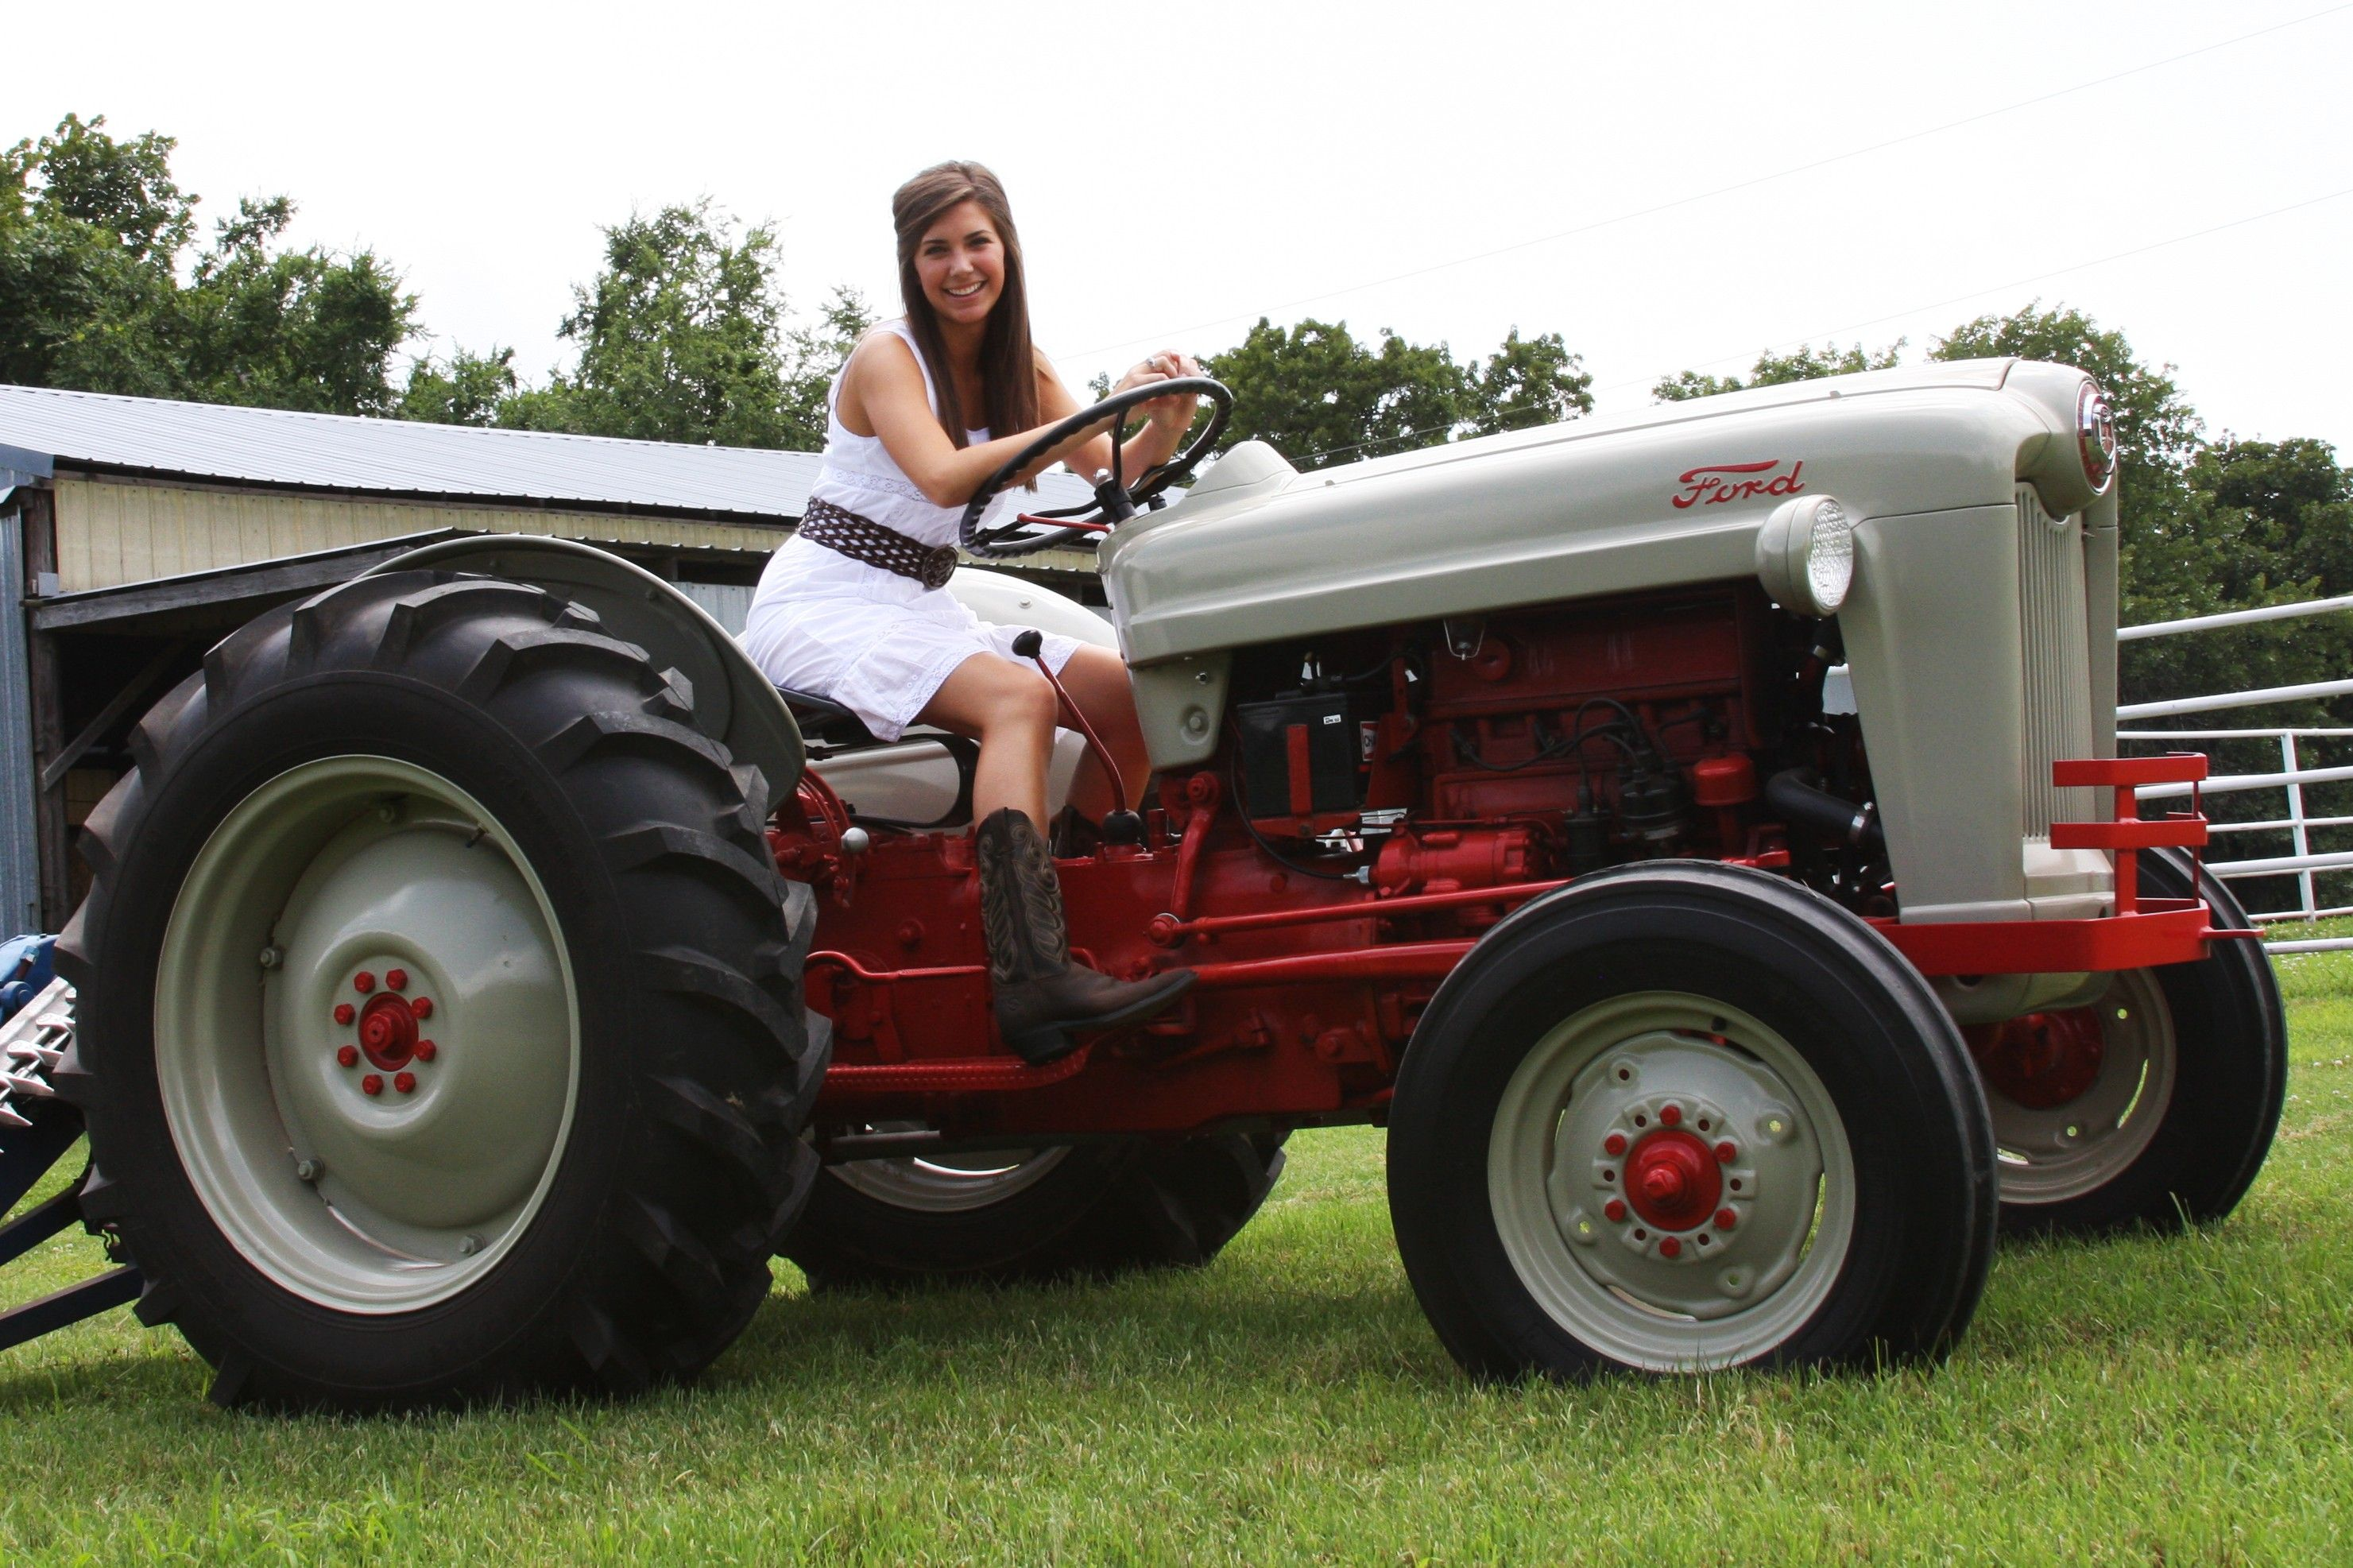 1953 Ford 8N - Ford Tractor Tractor Of The Week Ford Jubilee The Fastline Blog - 1953 Ford 8N